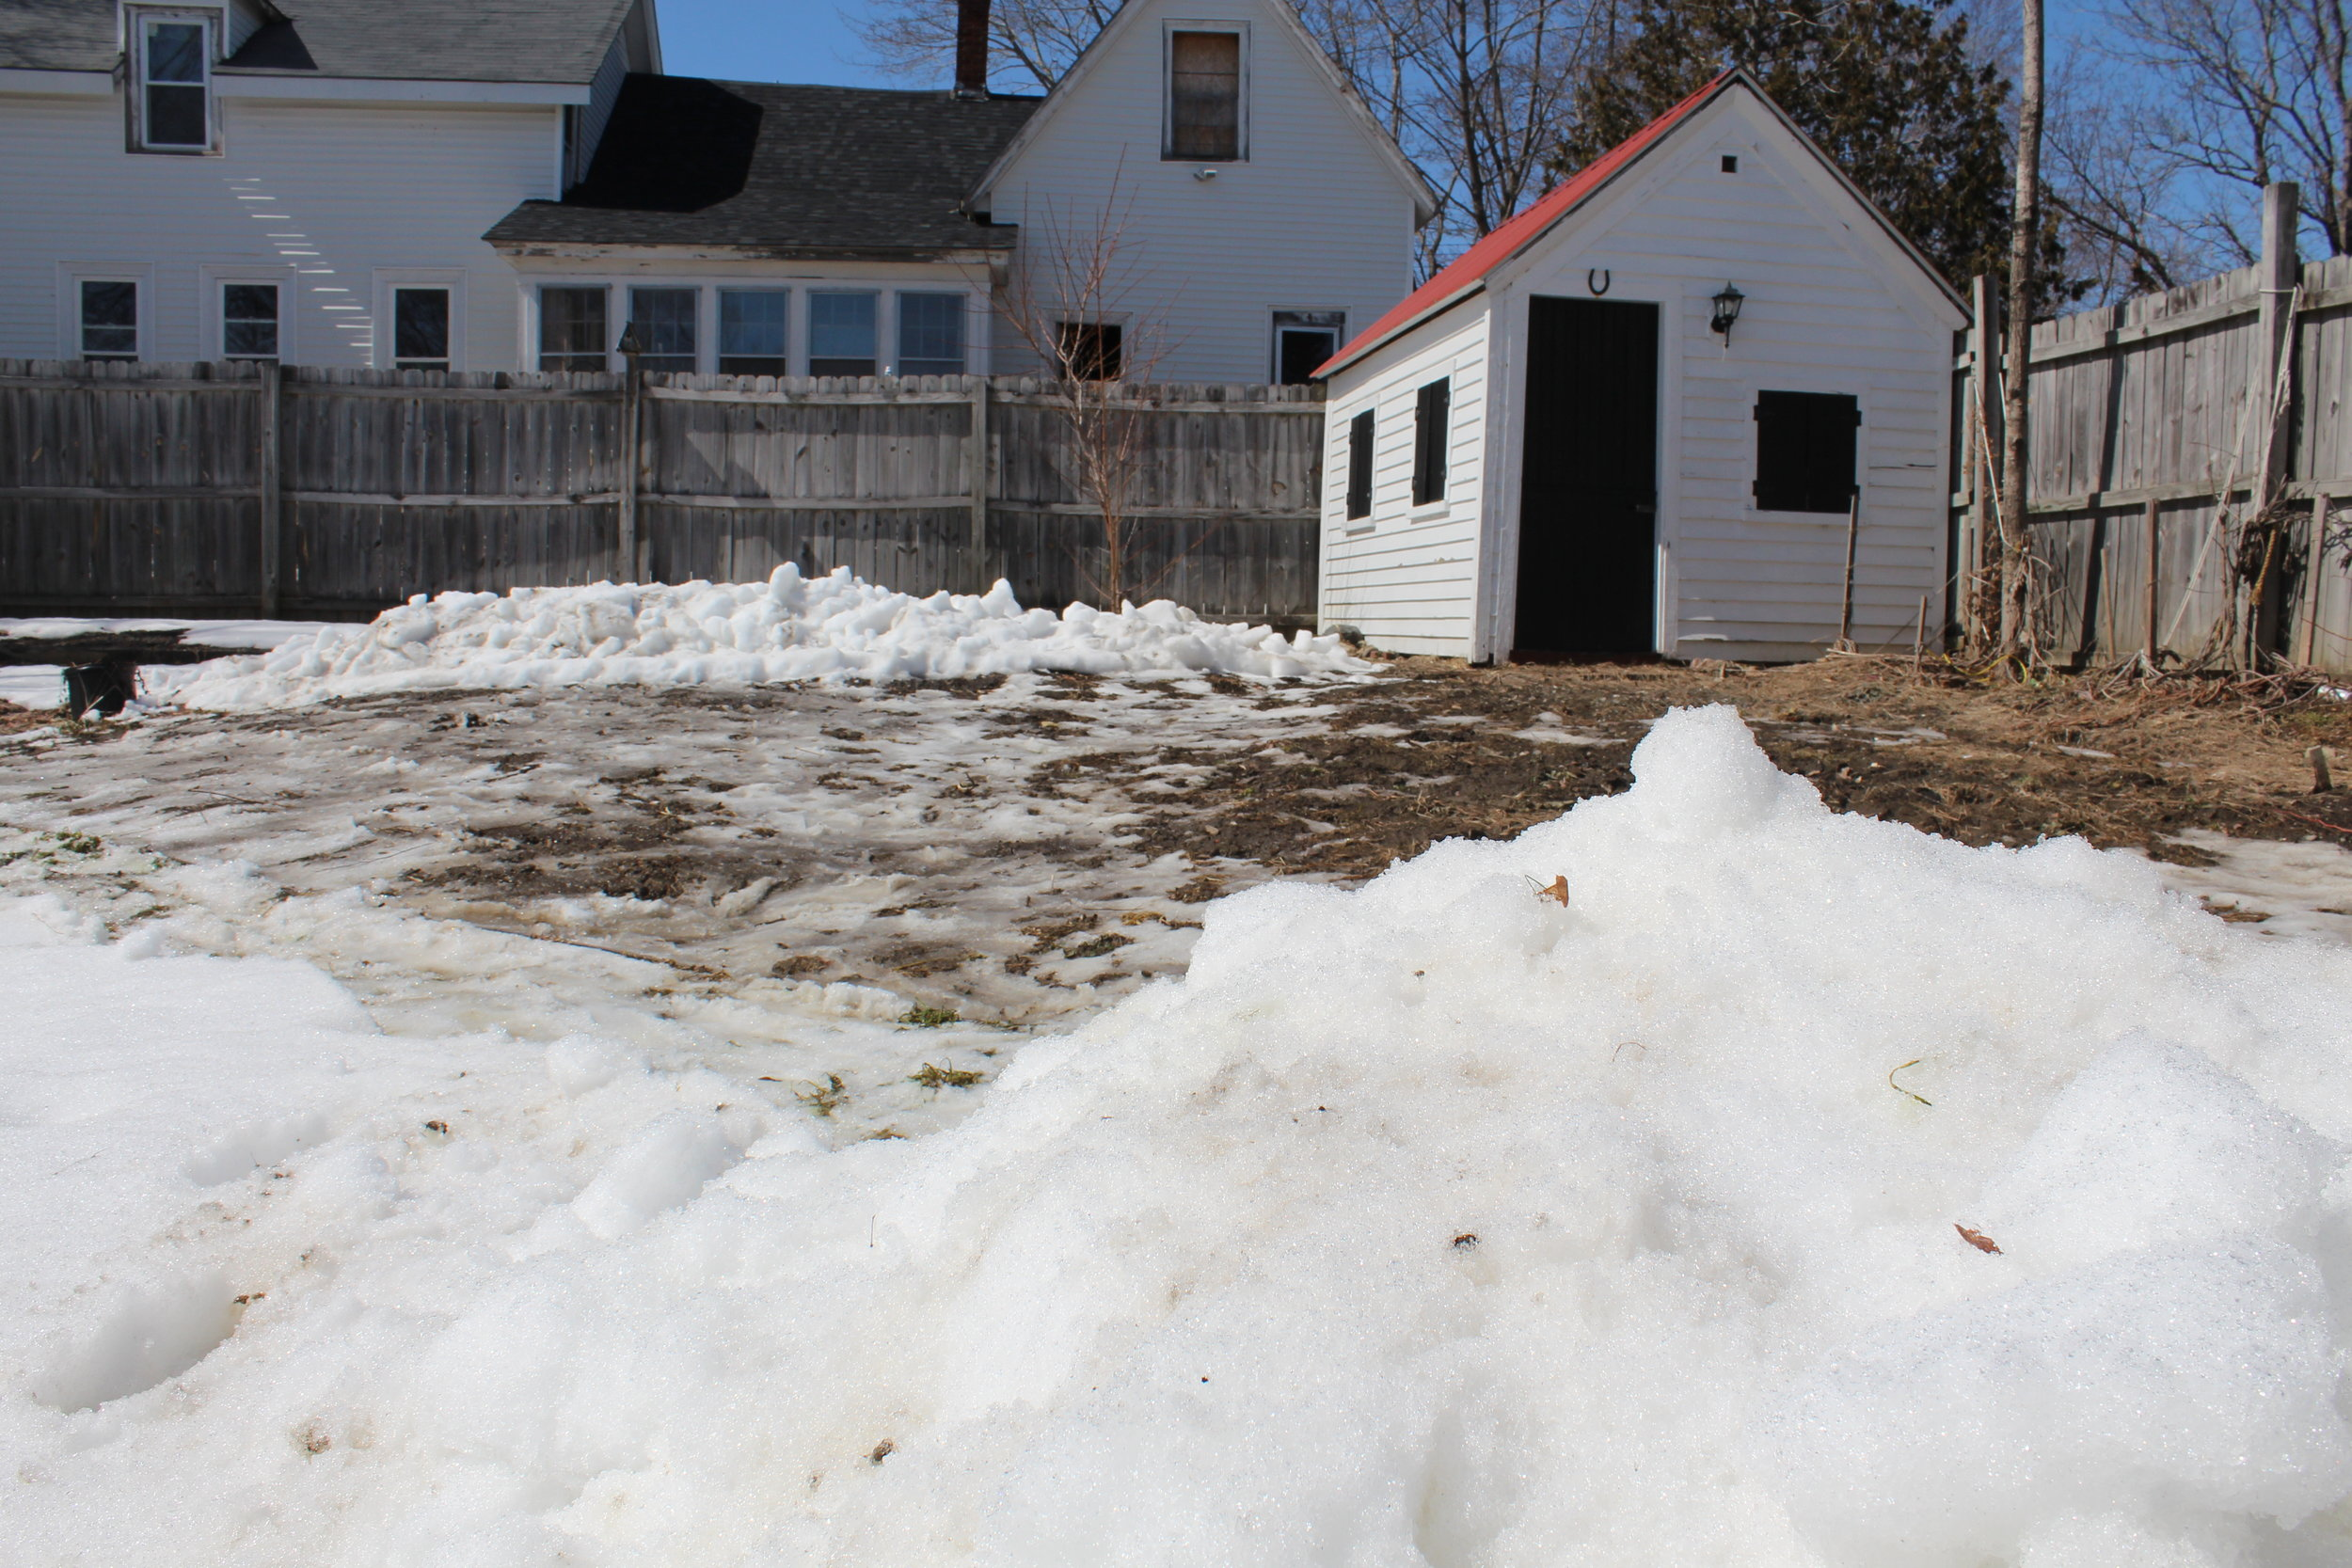 I had to shovel the snow out of my pumpkin patch so I could set up my hoop house and transplant my seedlings.